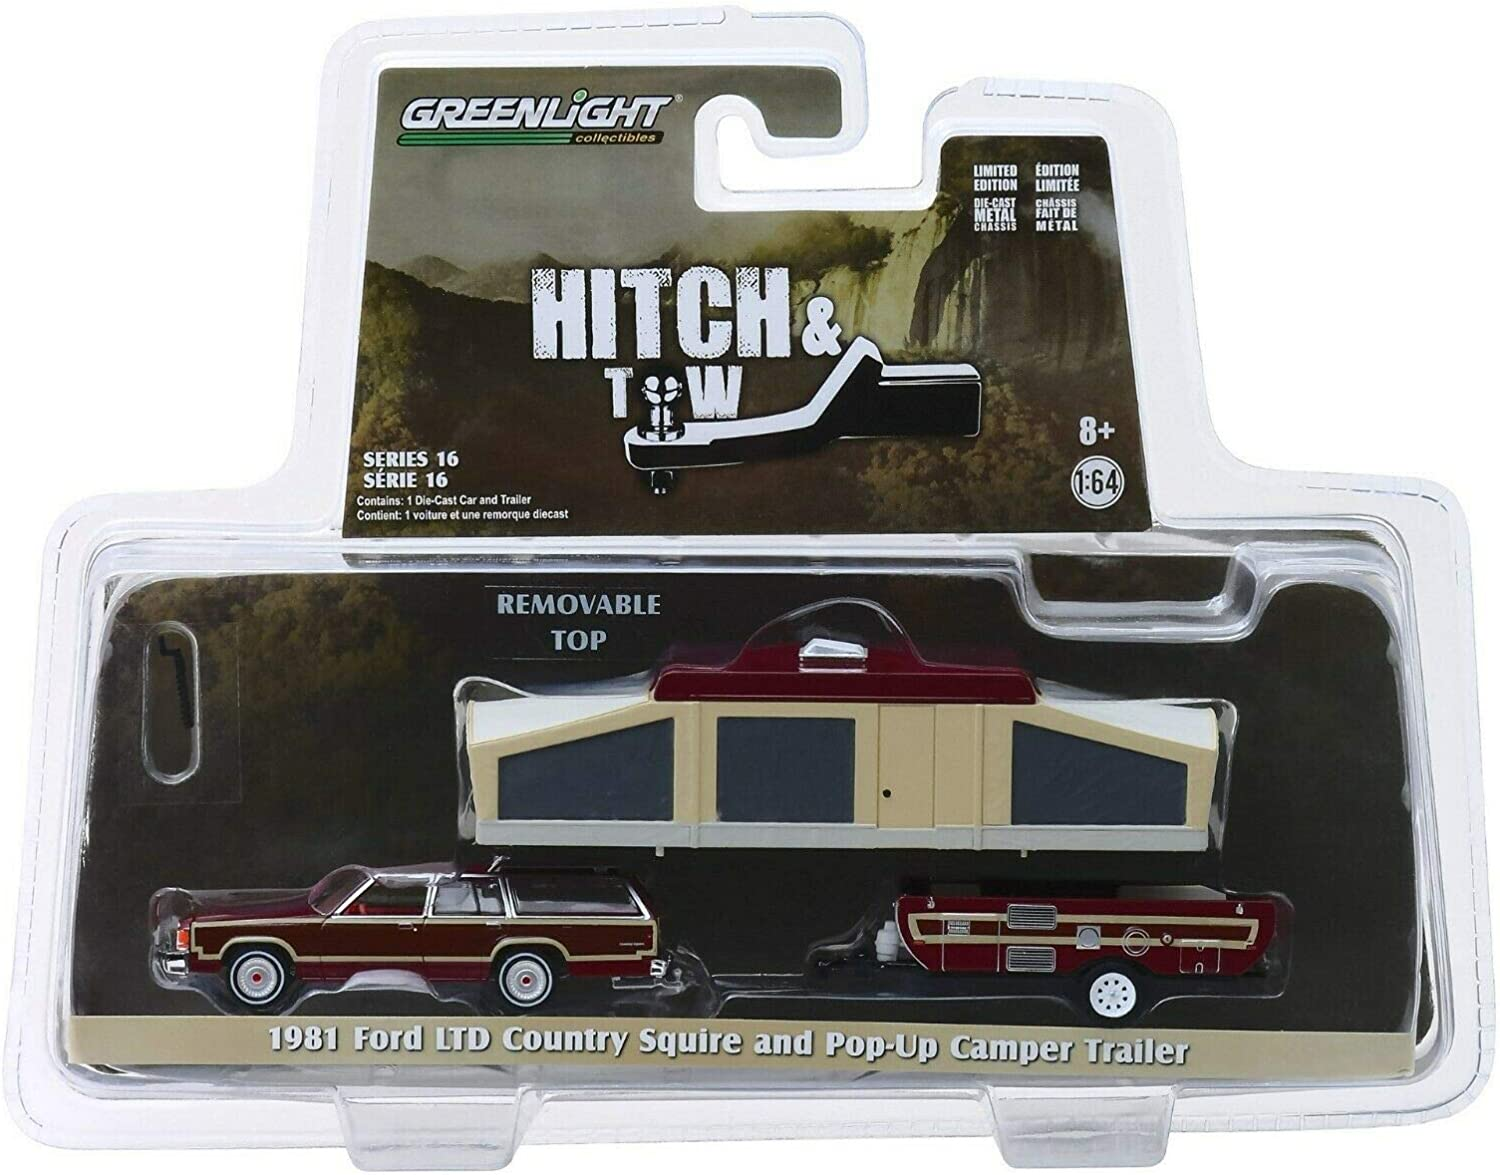 Greenlight 1//64 Hitch /& Tow Series 16-1981 Ford LTD Country Squire and Pop-Up Camper Trailer Diecast Model Car 32160C